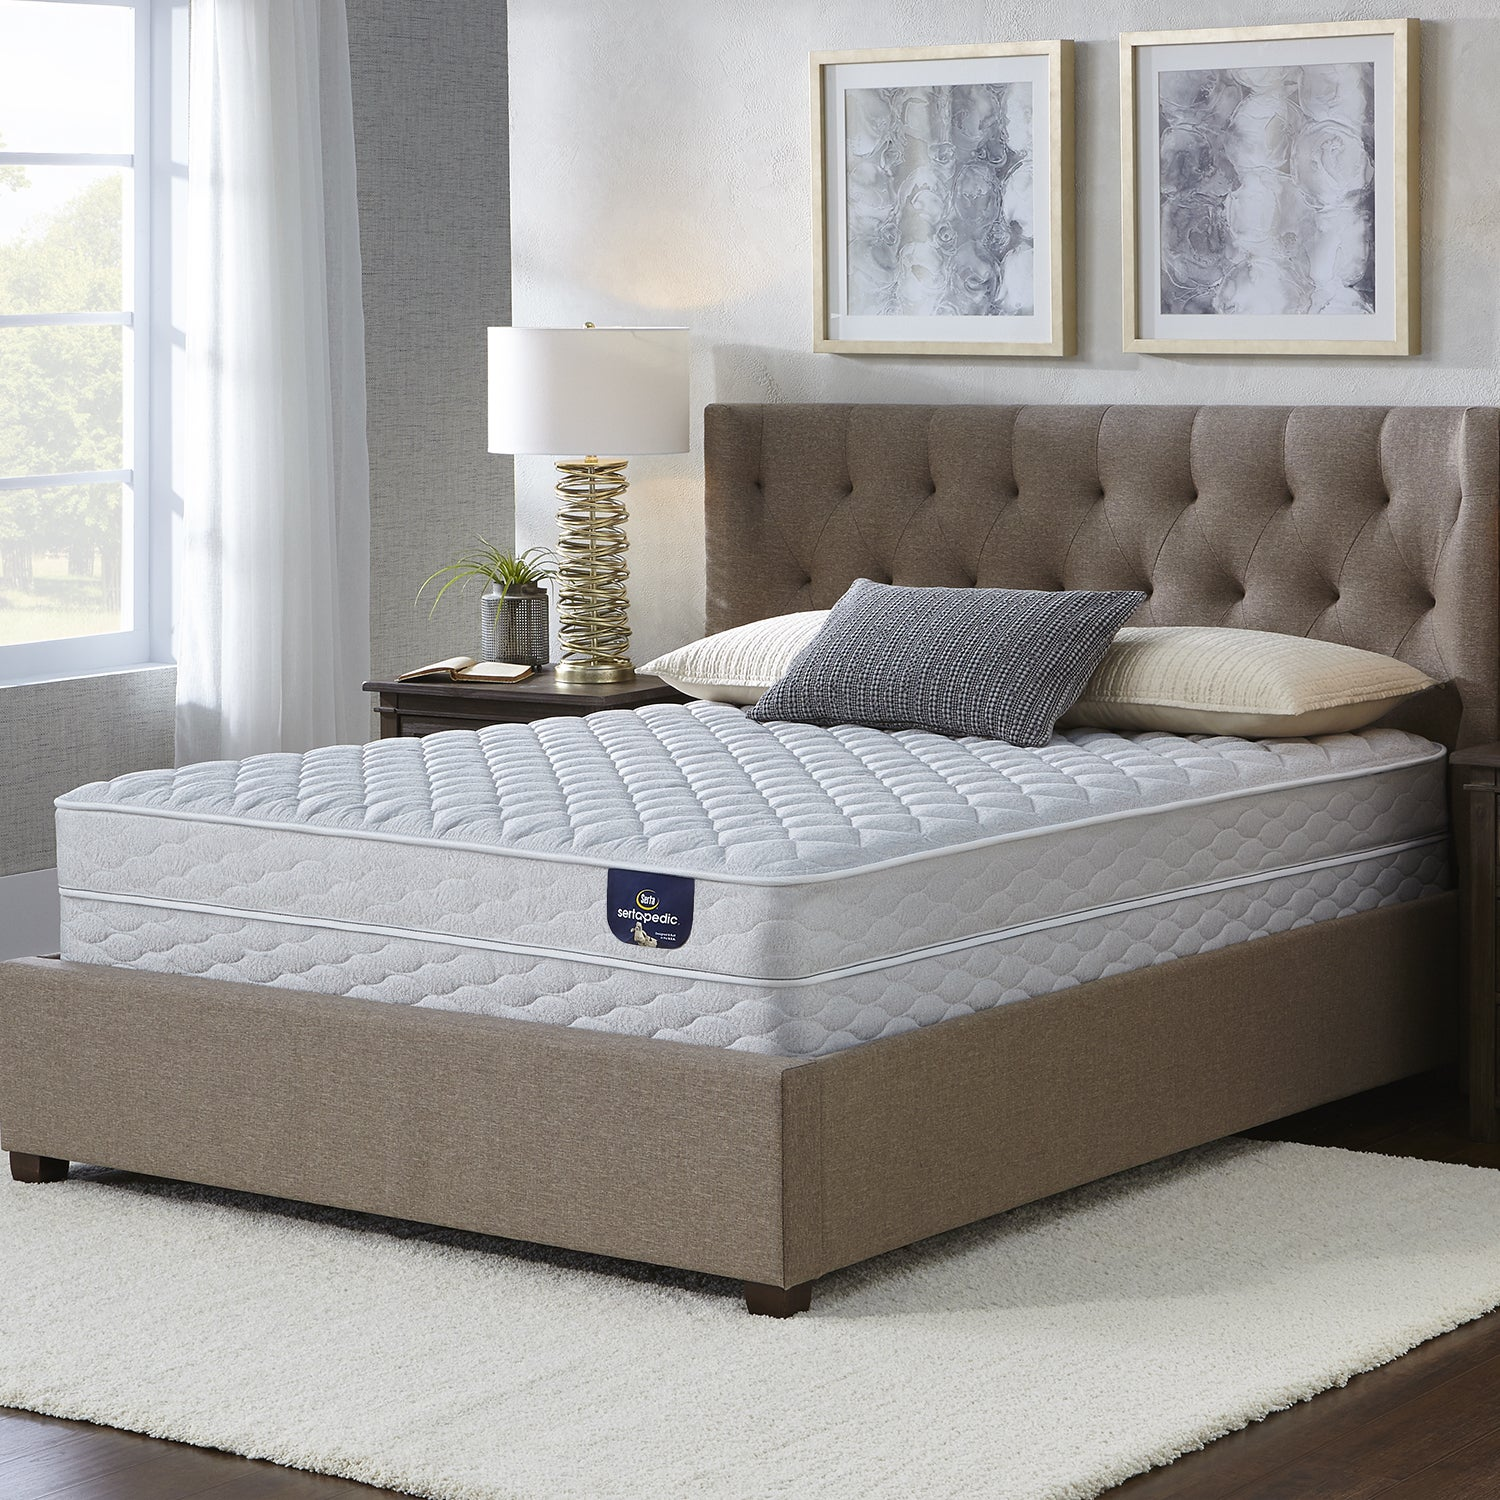 mattress and spring size slumber multiple com ip in box a walmart full sizes